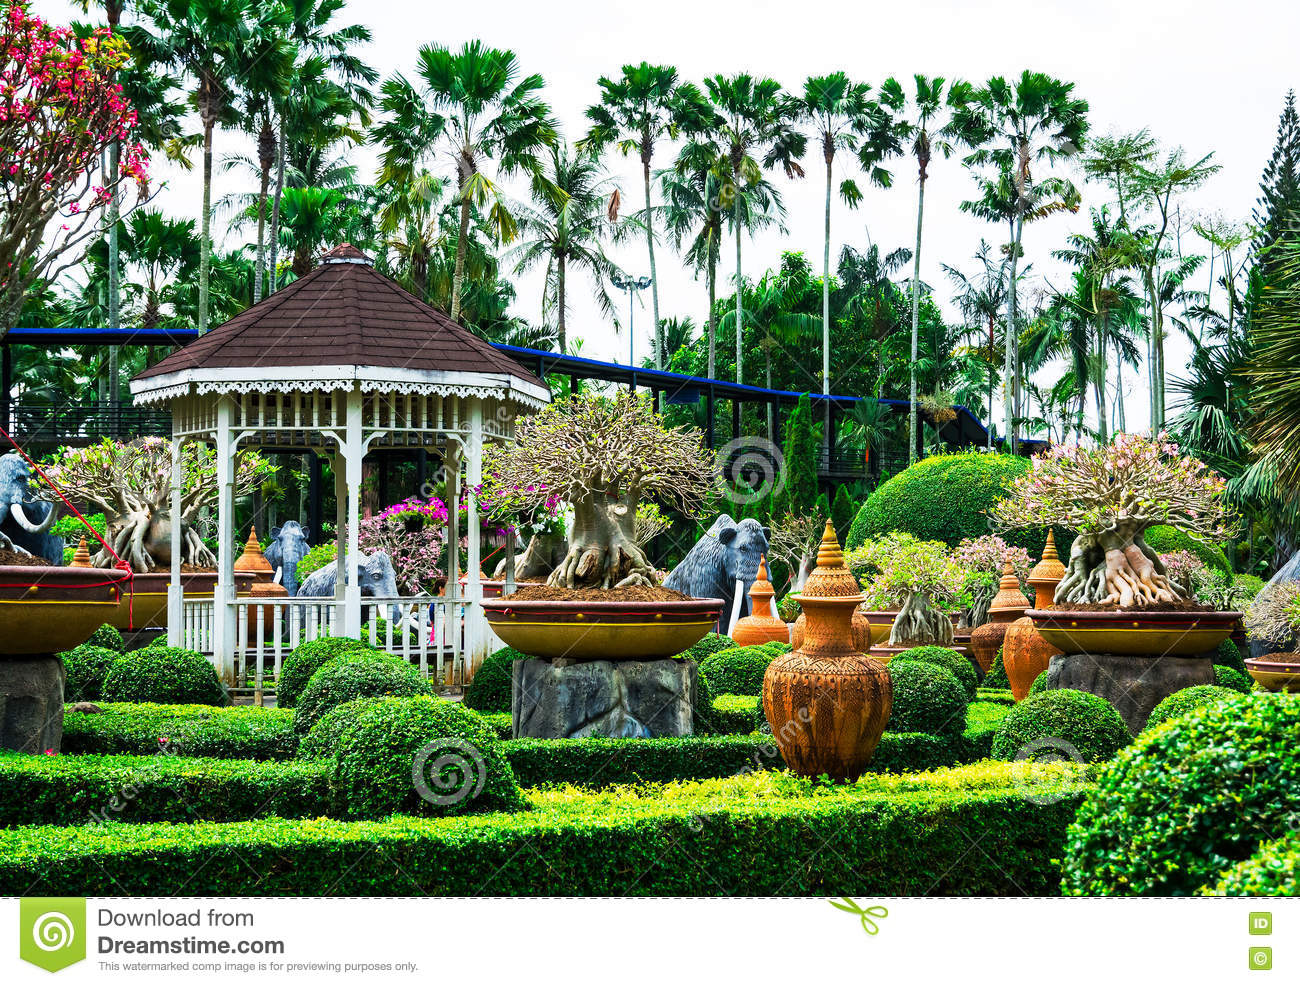 chonburi, thailand - march 18, 2016: beautiful garden decoration